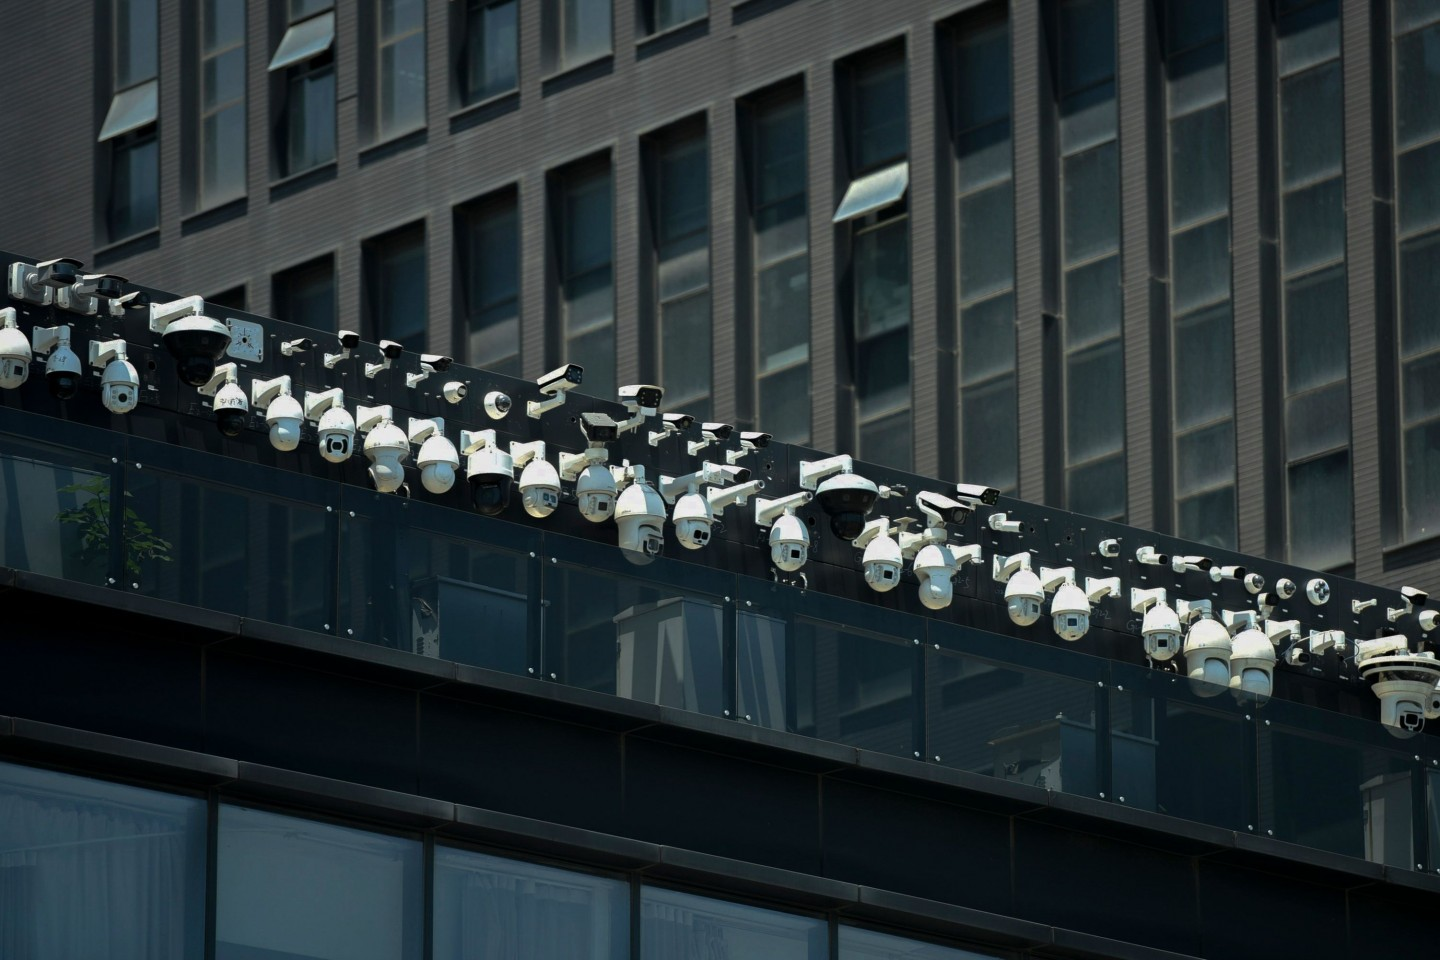 This file photo taken on 29 May 2019 shows Dahua surveillance cameras being installed on the Dahua Technologies office building in Hangzhou, in eastern China's Zhejiang province. Dahua Technology is a leading video surveillance equipment provider with an increasingly overseas footprint, with projects in Brazil, Italy, and other countries. (STR/AFP)